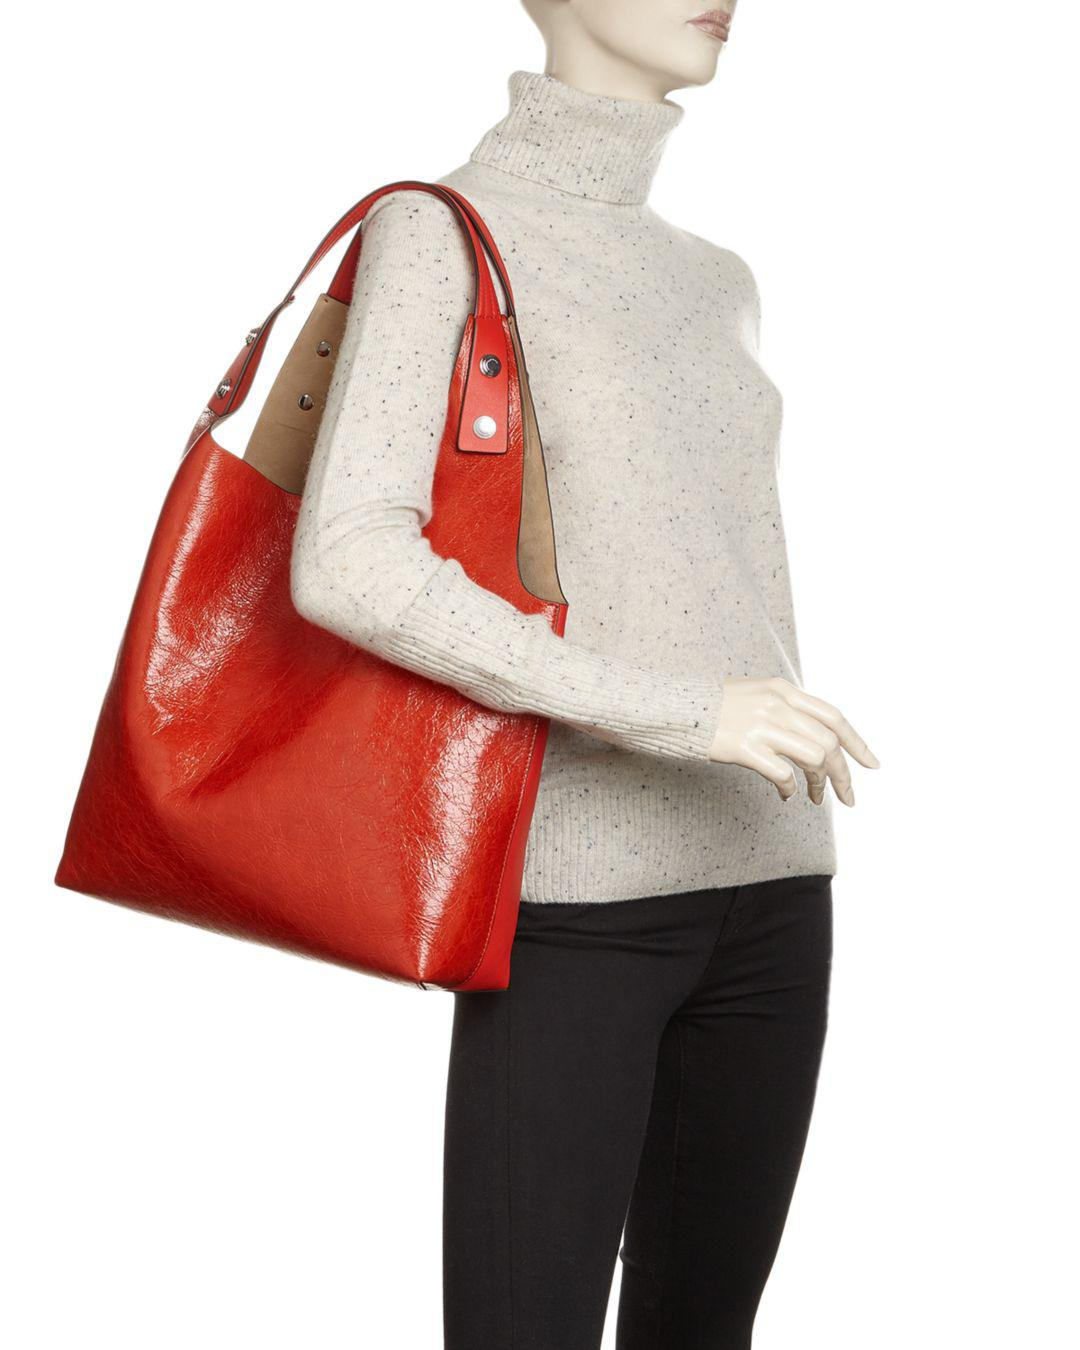 768c338b0be Lyst - Tory Burch Rory Leather Tote in Red